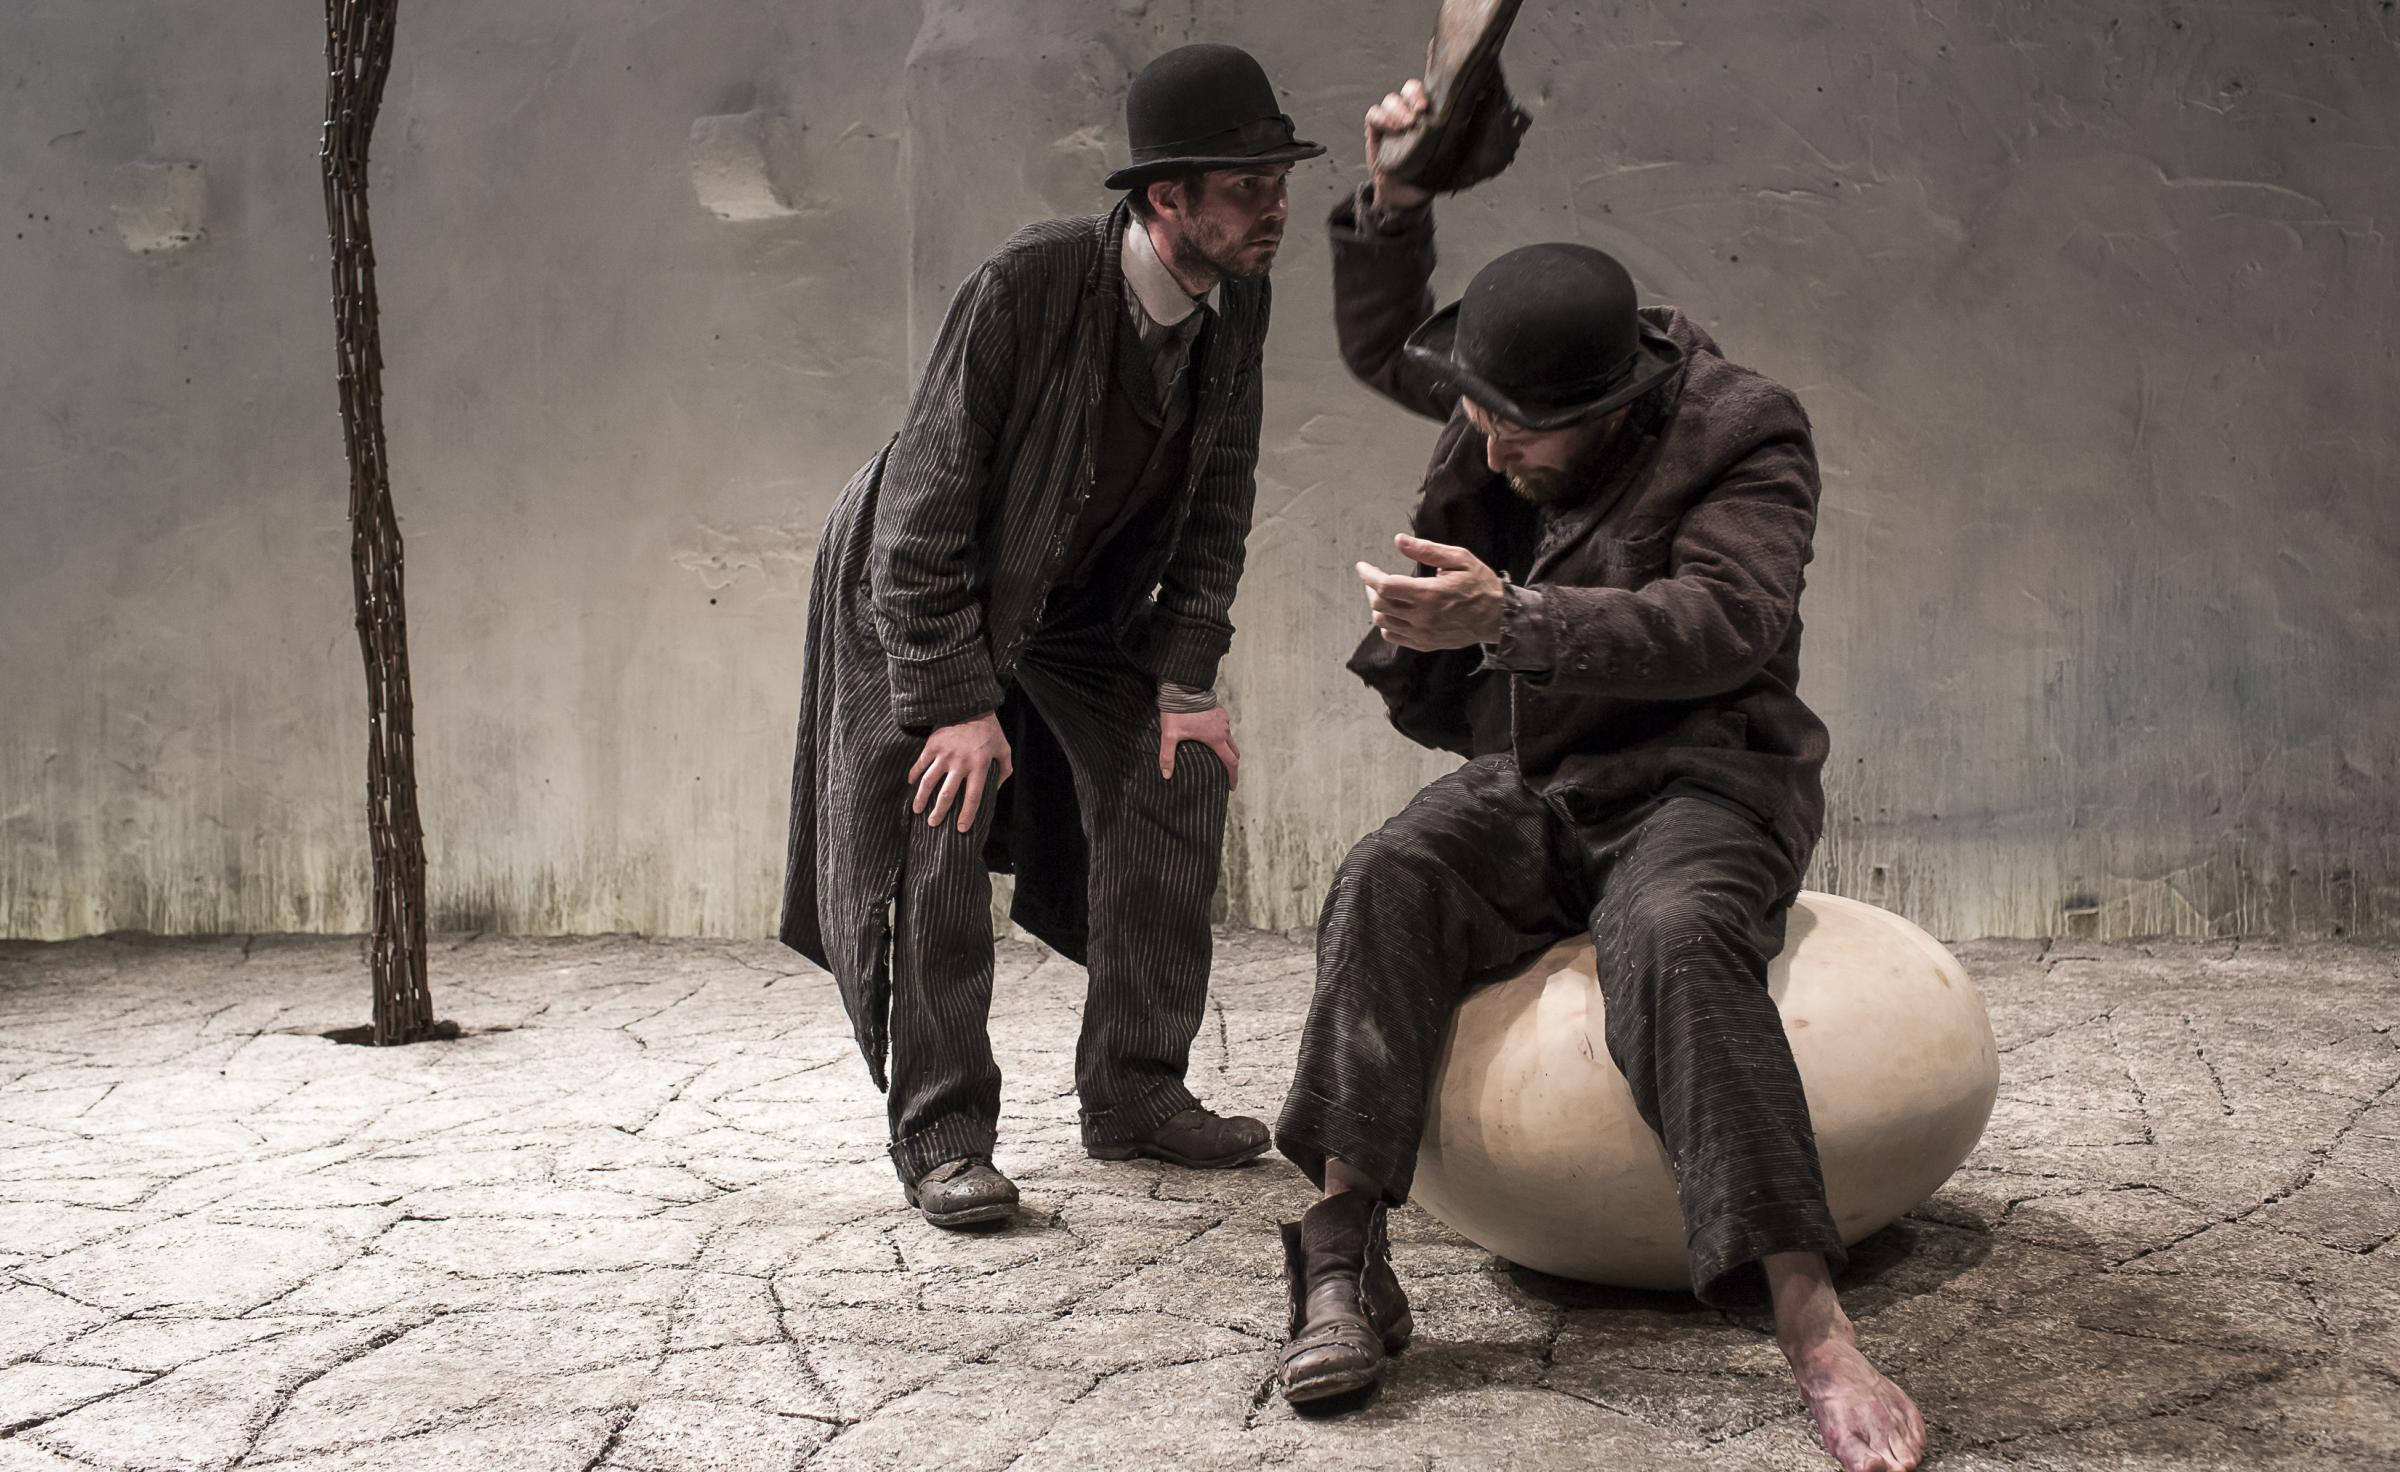 Marty Rea and Aaron Monaghan, above, star in Waiting for Godot by Samuel Beckett and directed by Garry Hynes. Photograph: Matthew Thompson